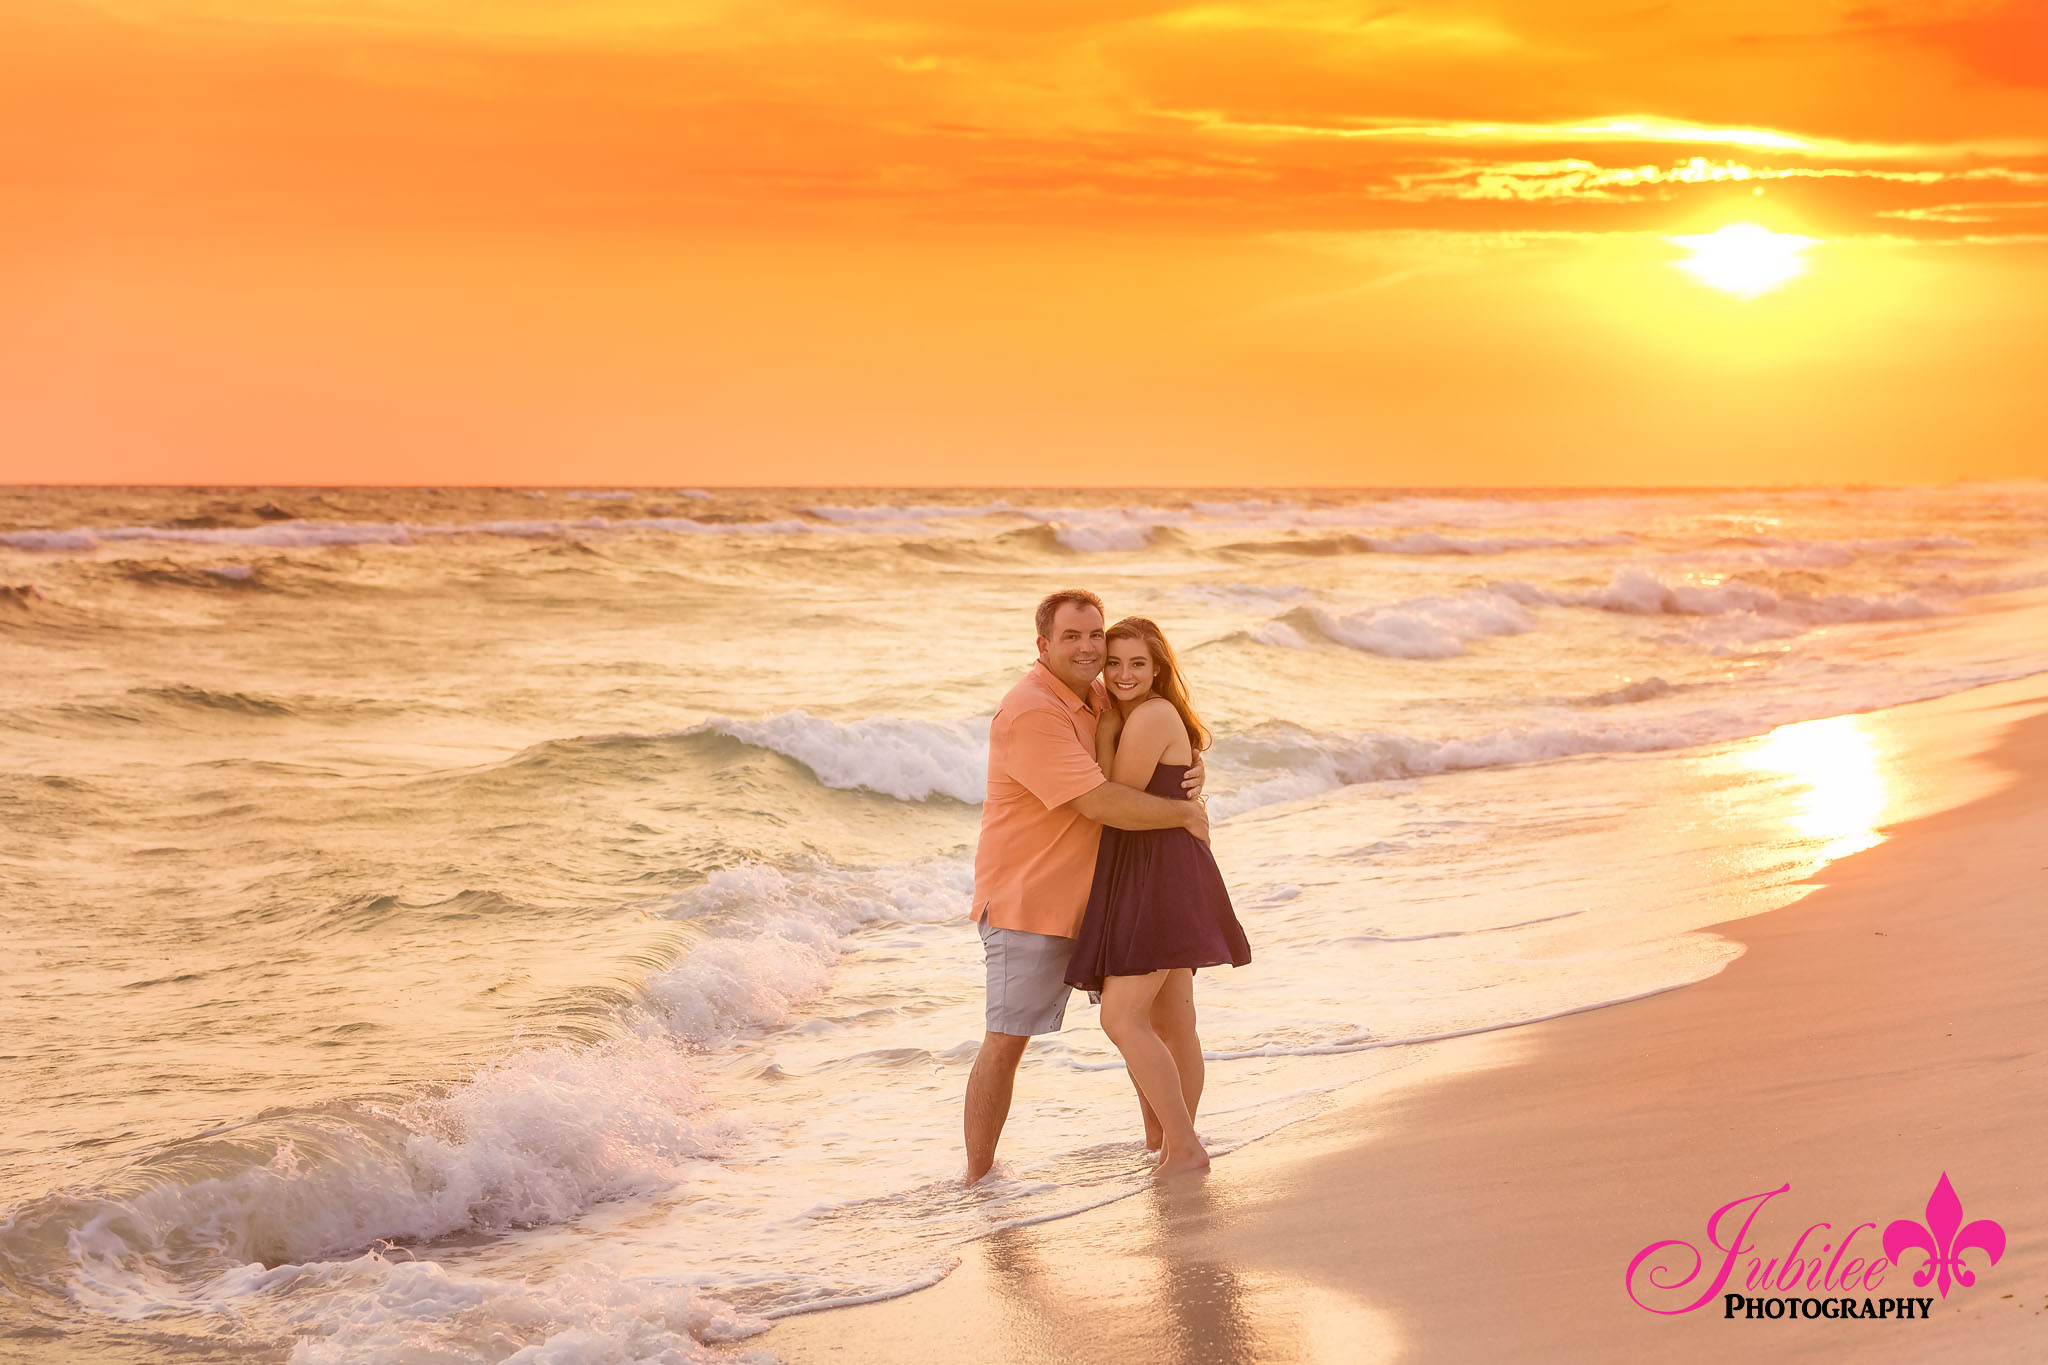 destin_photographer_6070